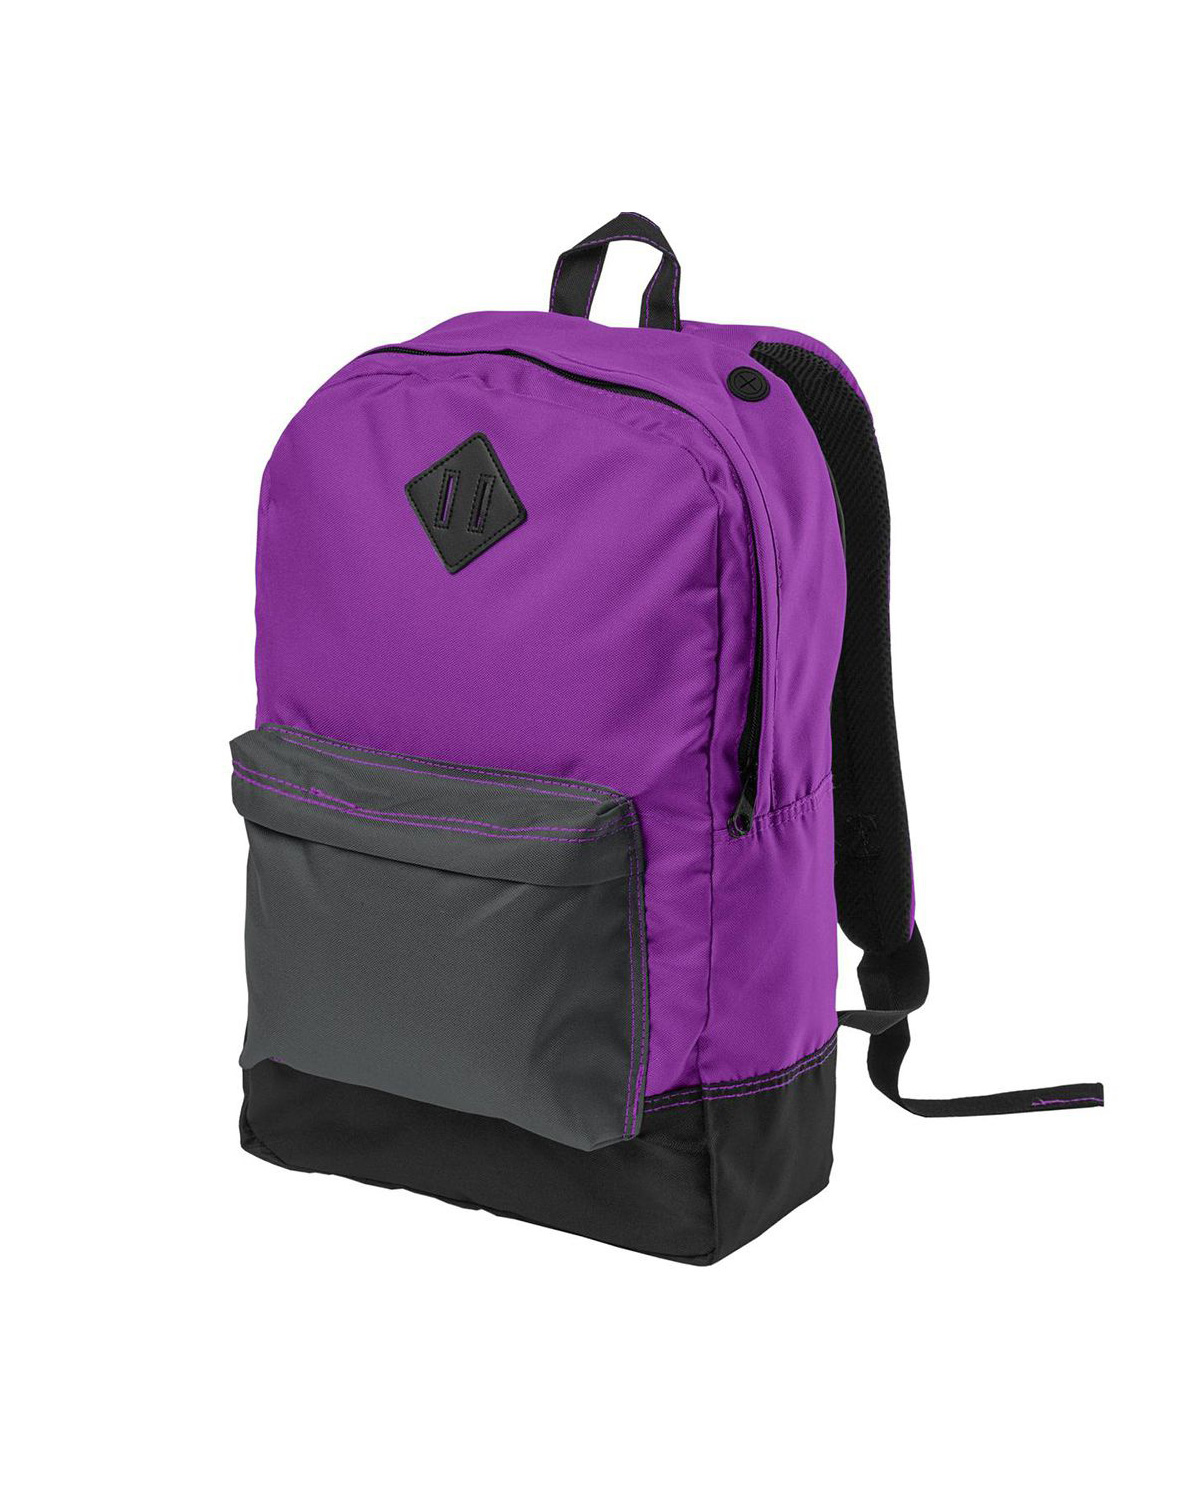 'District DT715 Retro Backpack'